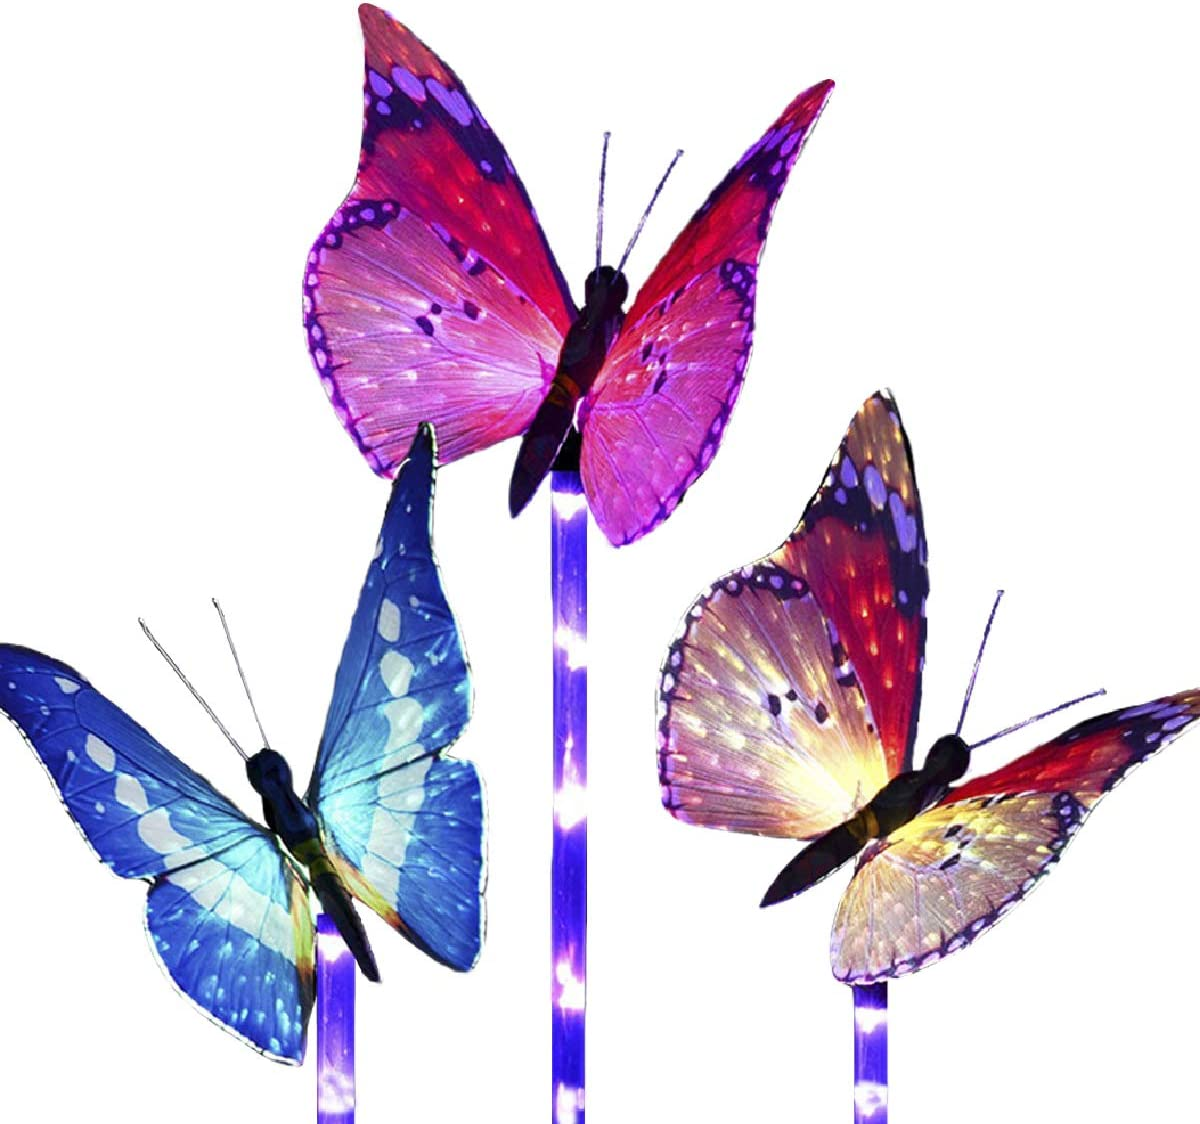 Solar Butterfly Lights Outdoor Garden - Waterproof Light Sensor Wireless Purple LED 3 Pcs Stake Fiber Optic Decorative Multi-Color Changing Lighting Yard Pathway Patio Lawn Walkway Landscape MILKYCREW